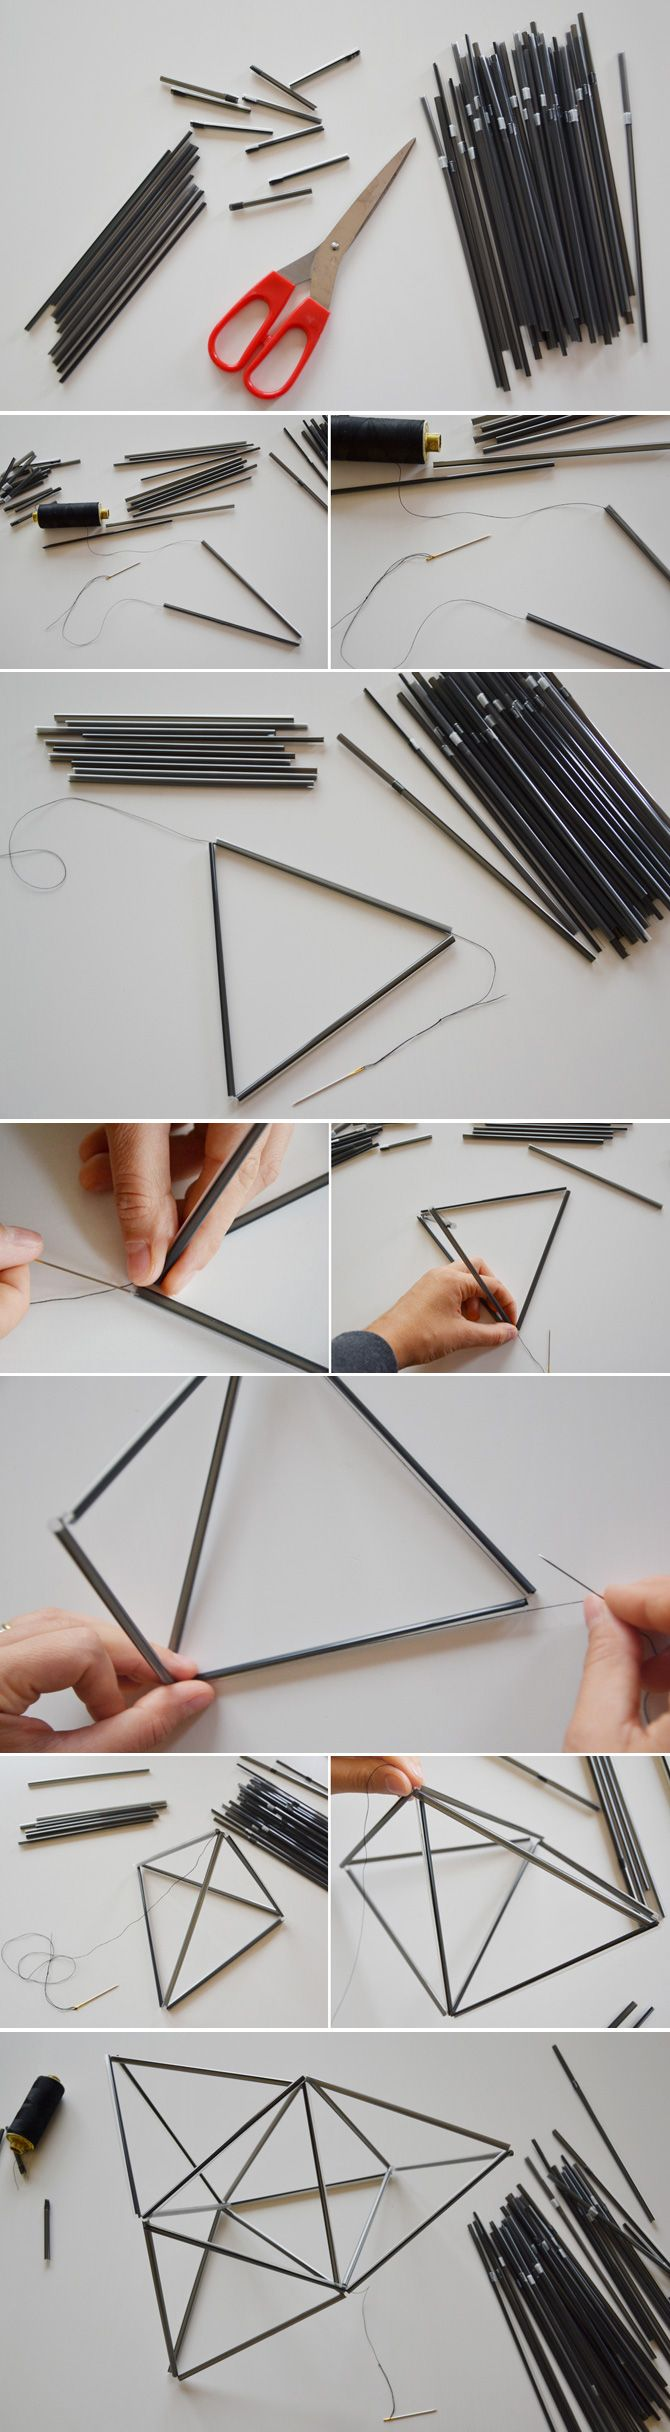 GEOMETRIC MOBILES DIY http://gucki.it/2013/10/09/diy-geometric-mobiles/